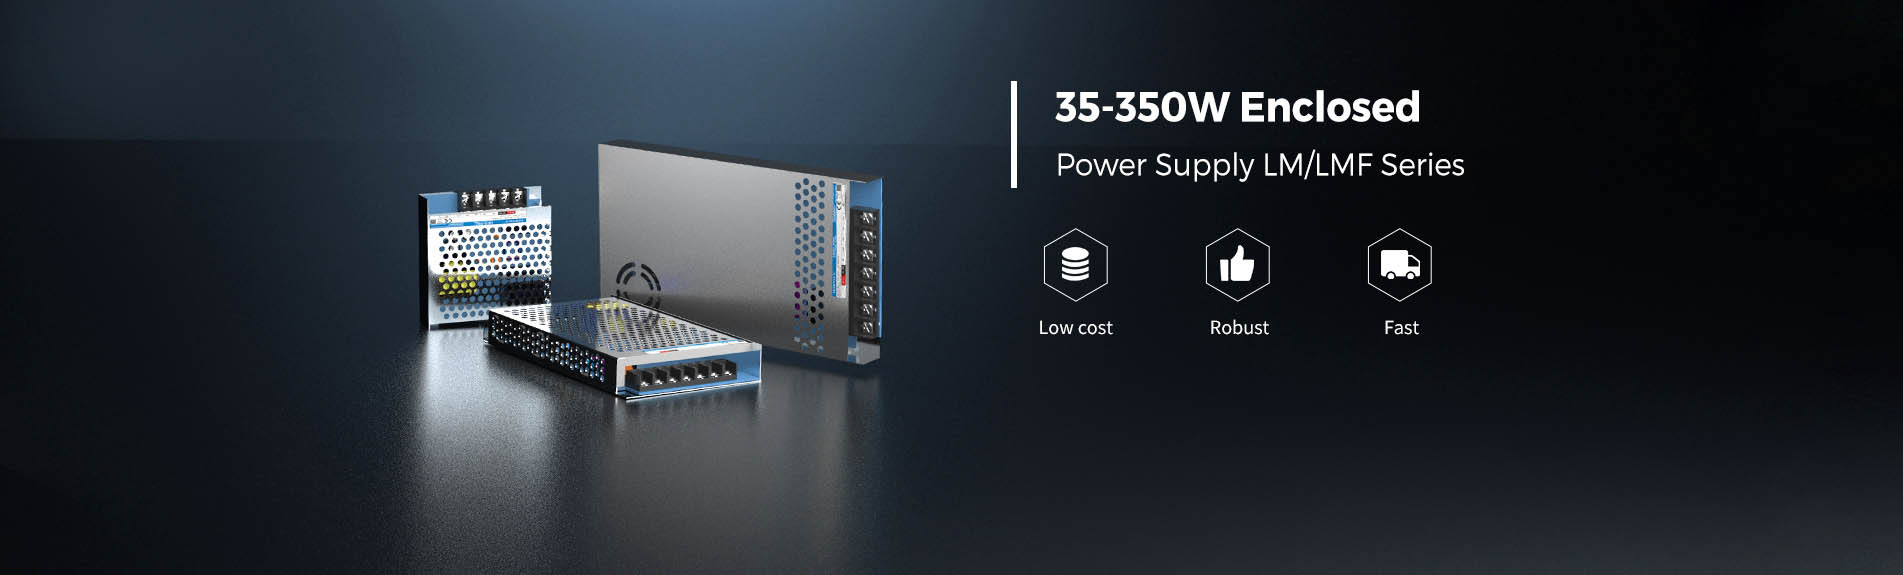 Mornsun 35-350W enclosed switching power supply